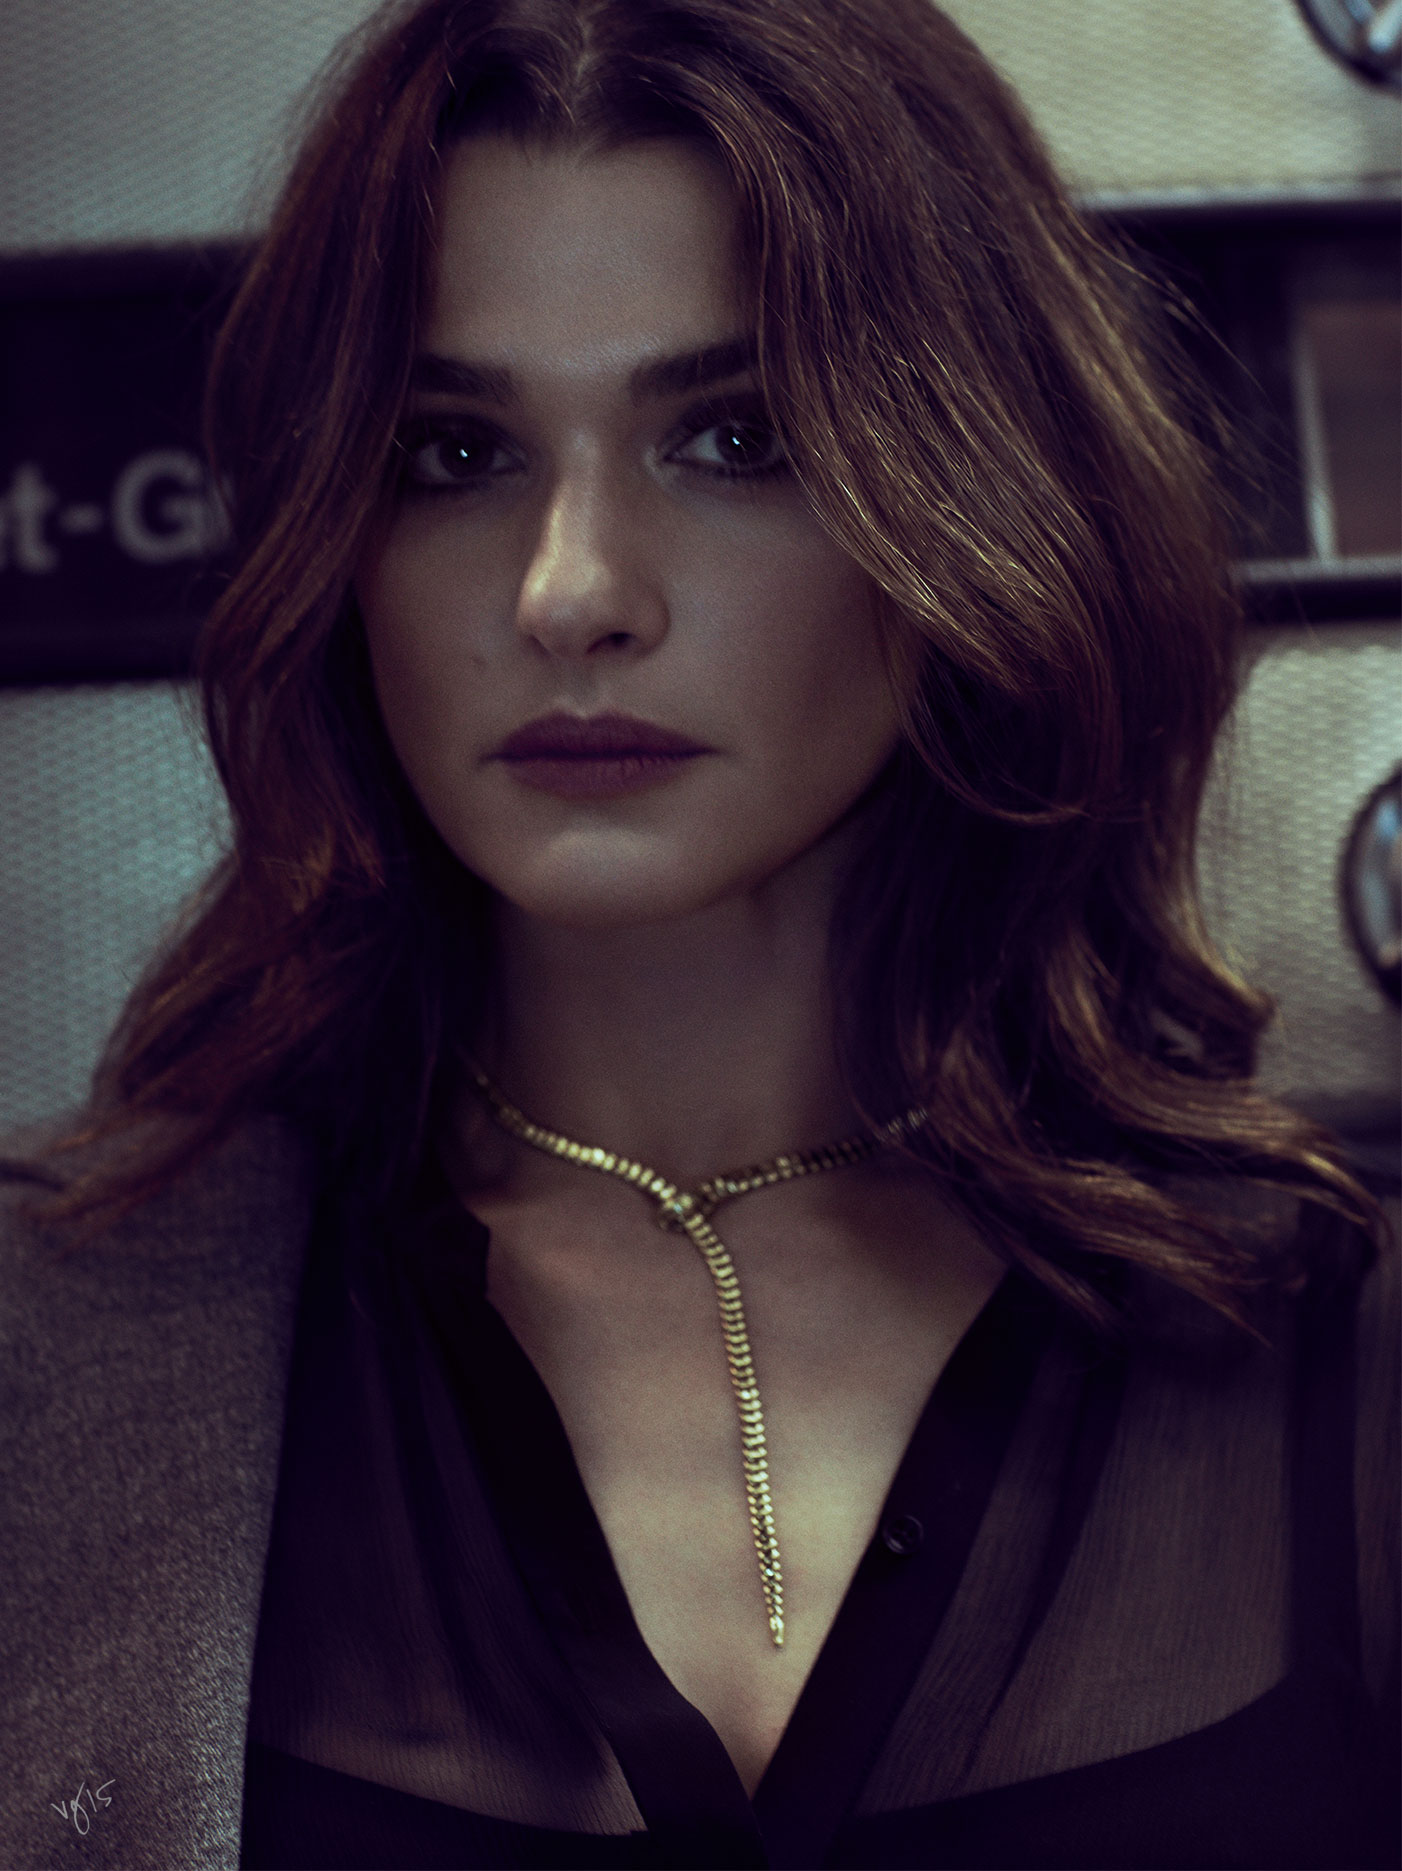 Rachel Weisz 2015 : Rachel Weisz: The Violet Files Photoshoot (December 2015)-02